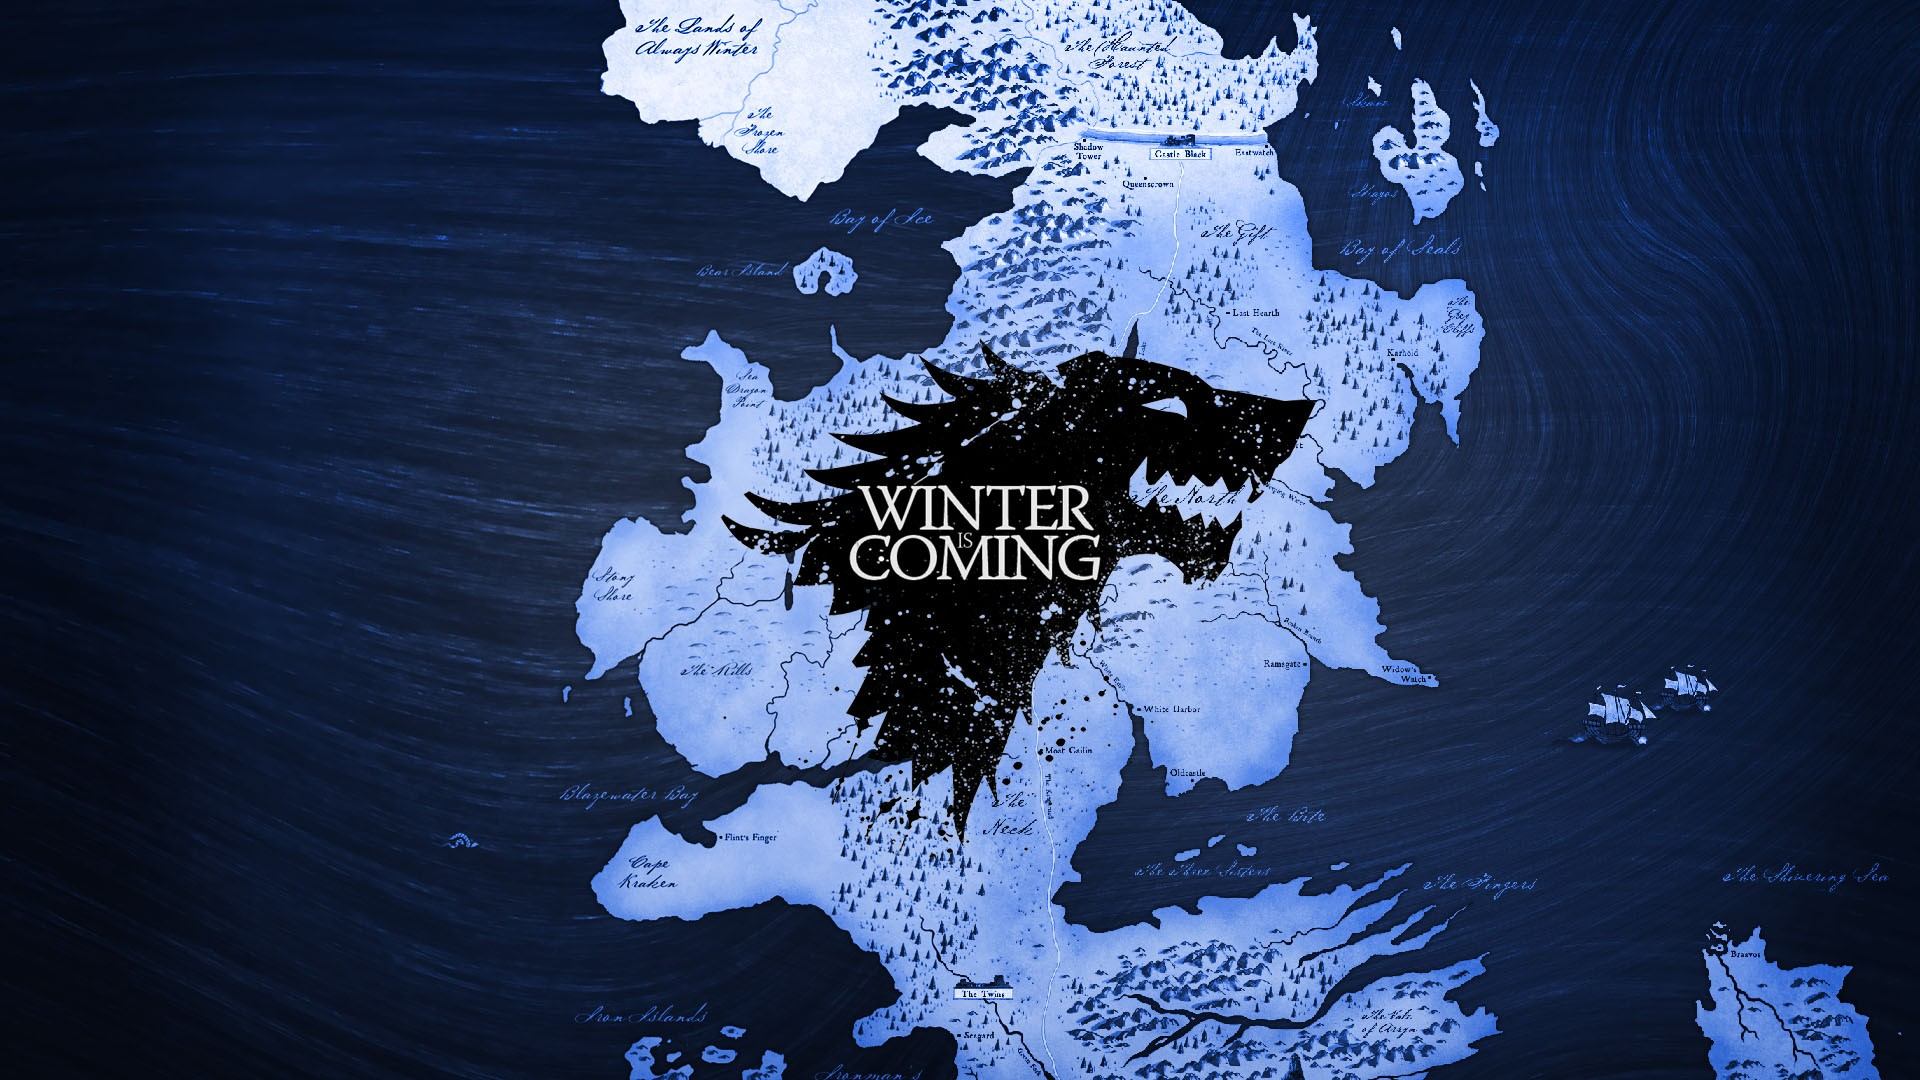 game of thrones hd wallpaper ·① download free beautiful high